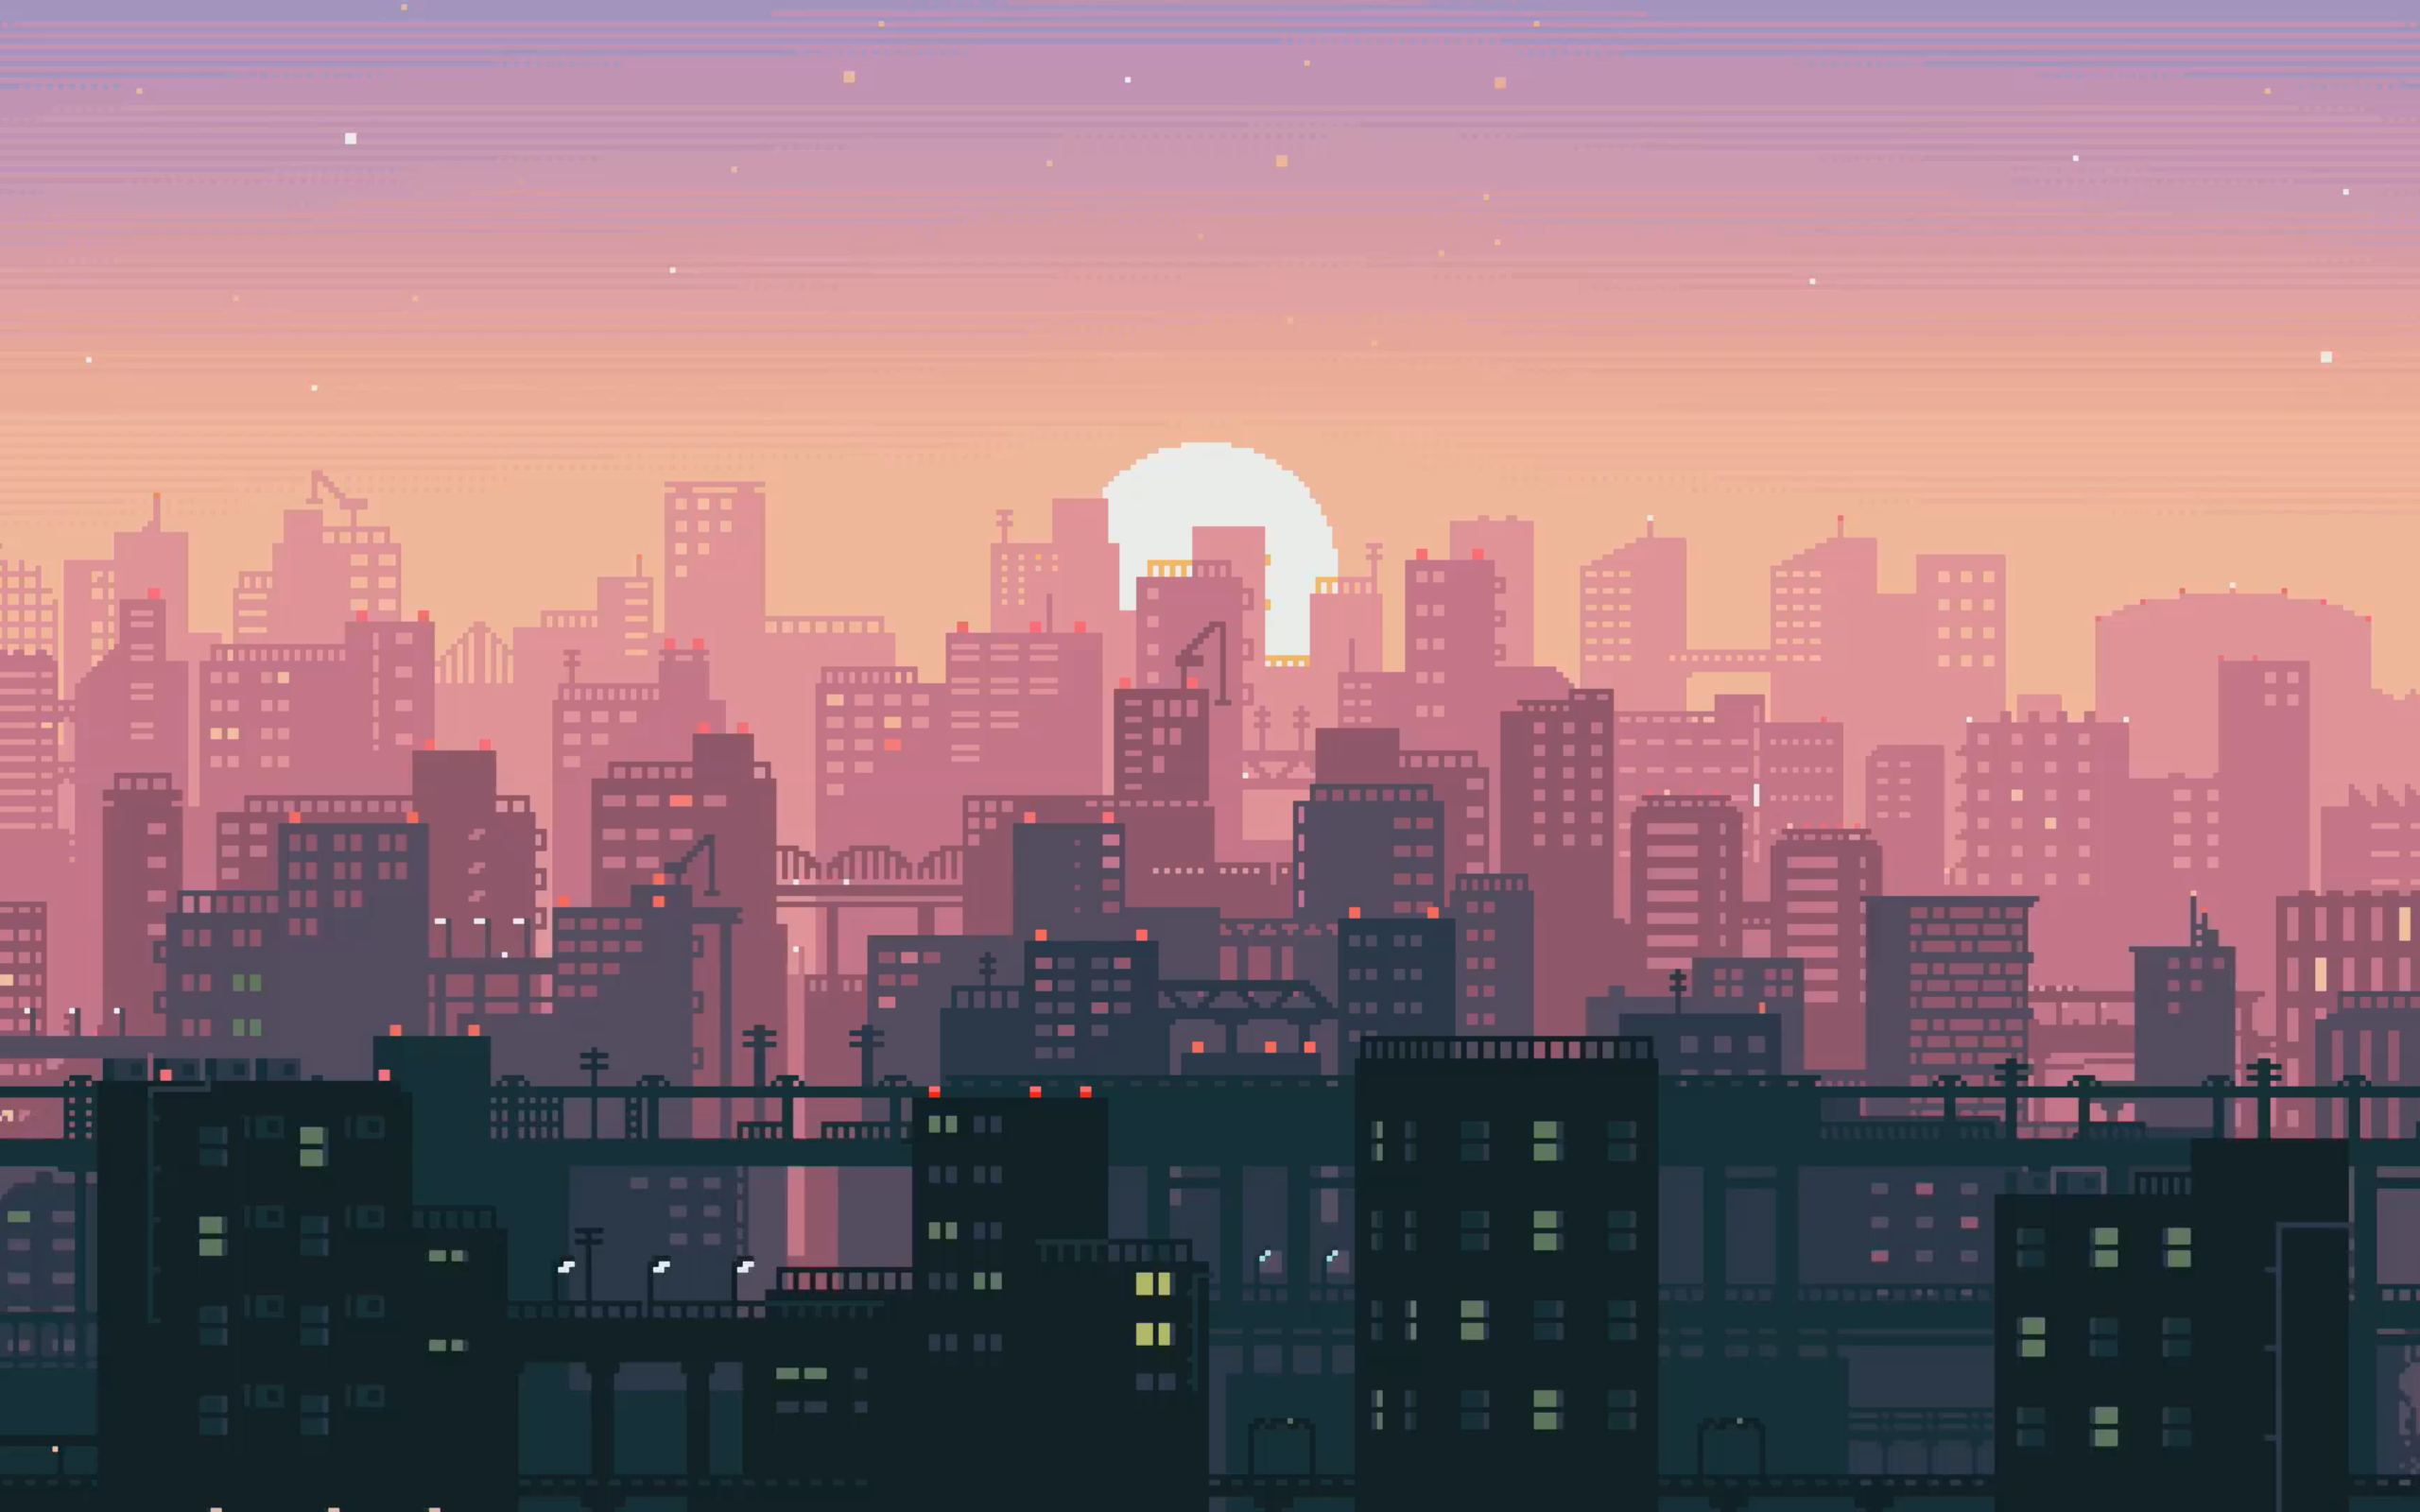 General 2560x1600 sunset pixel art pixels city sky skyline 16-bit